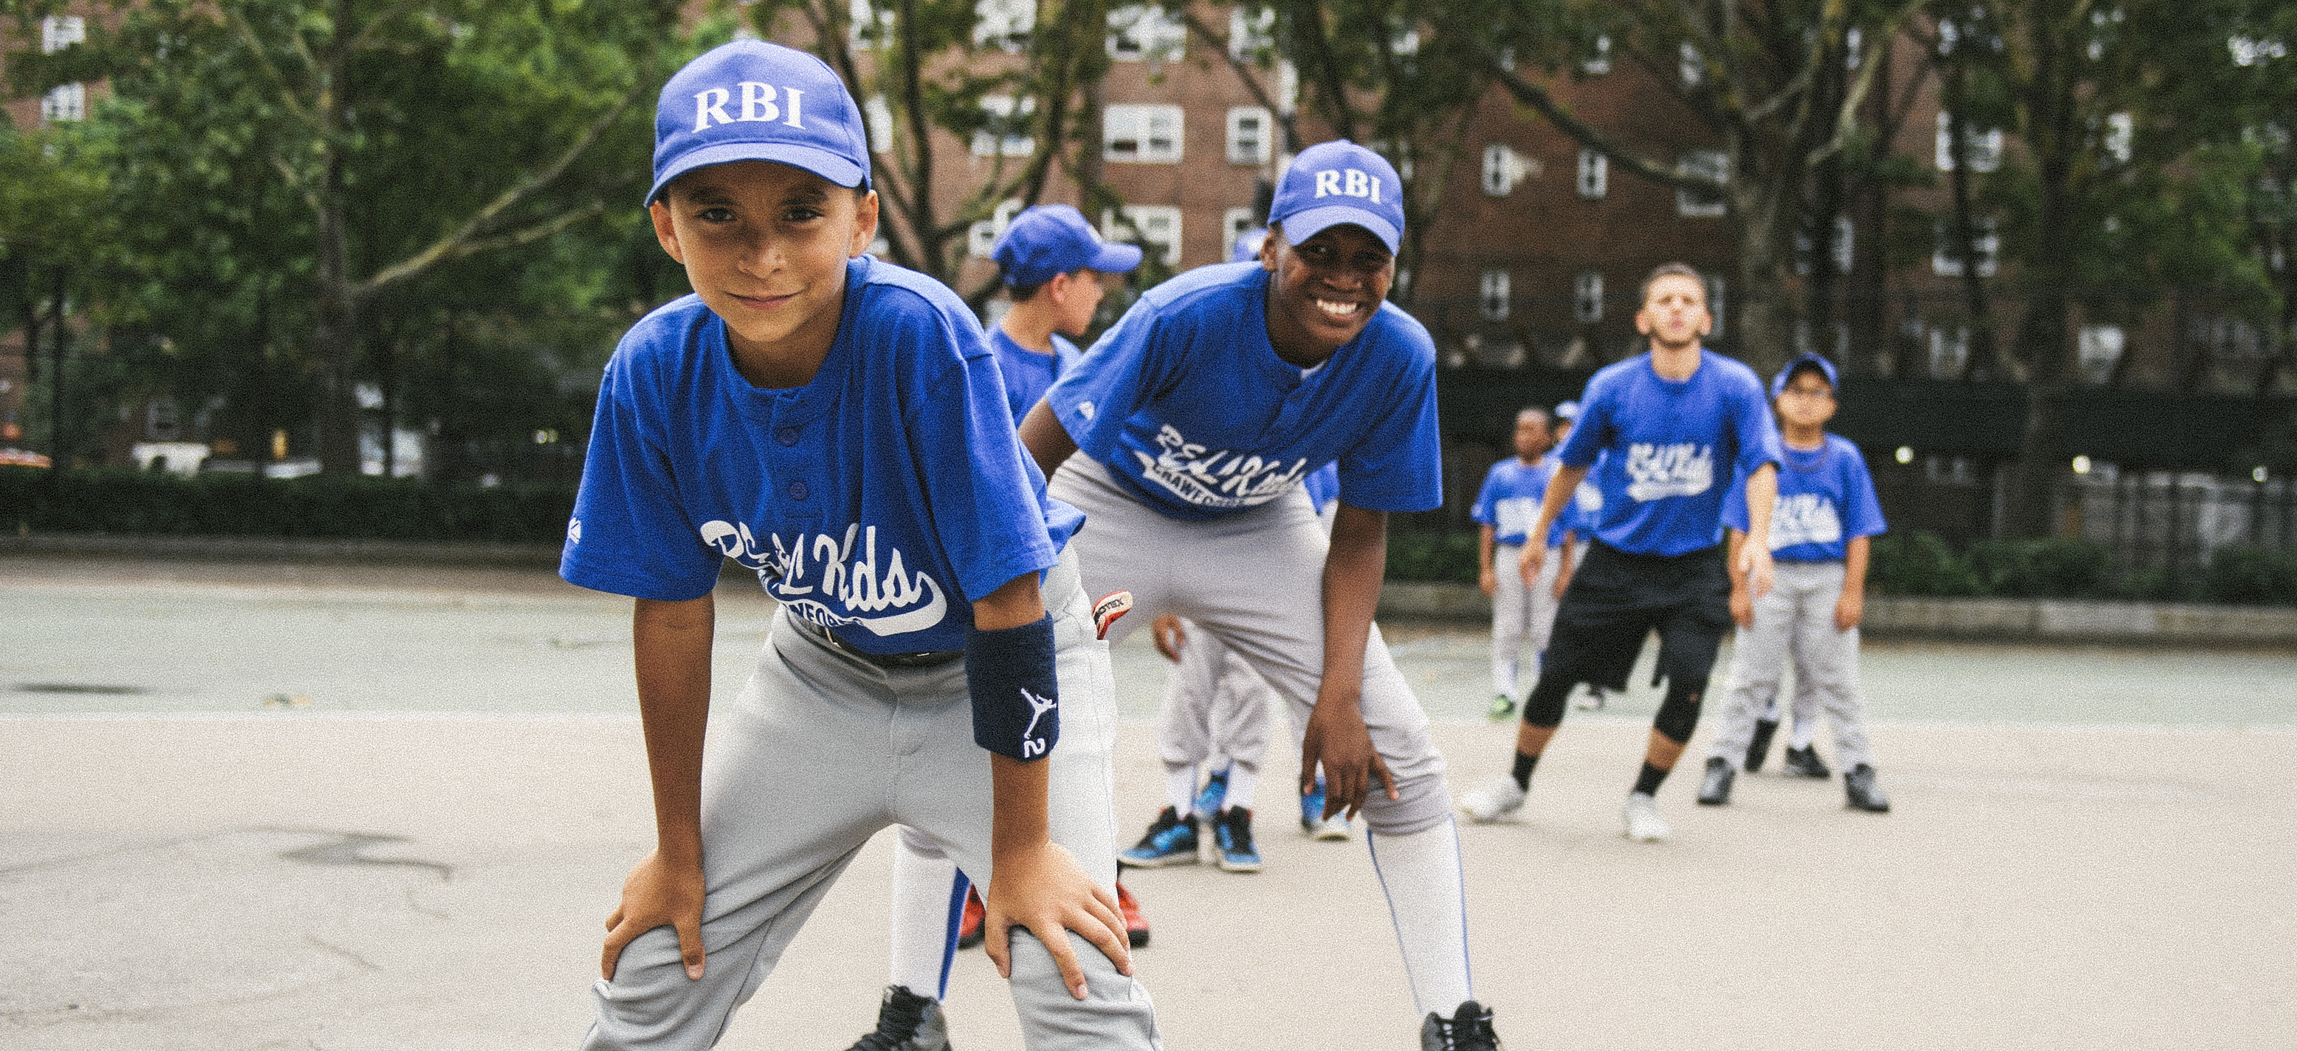 Best Baseball Camp Programs For Kids In Nyc This Summer